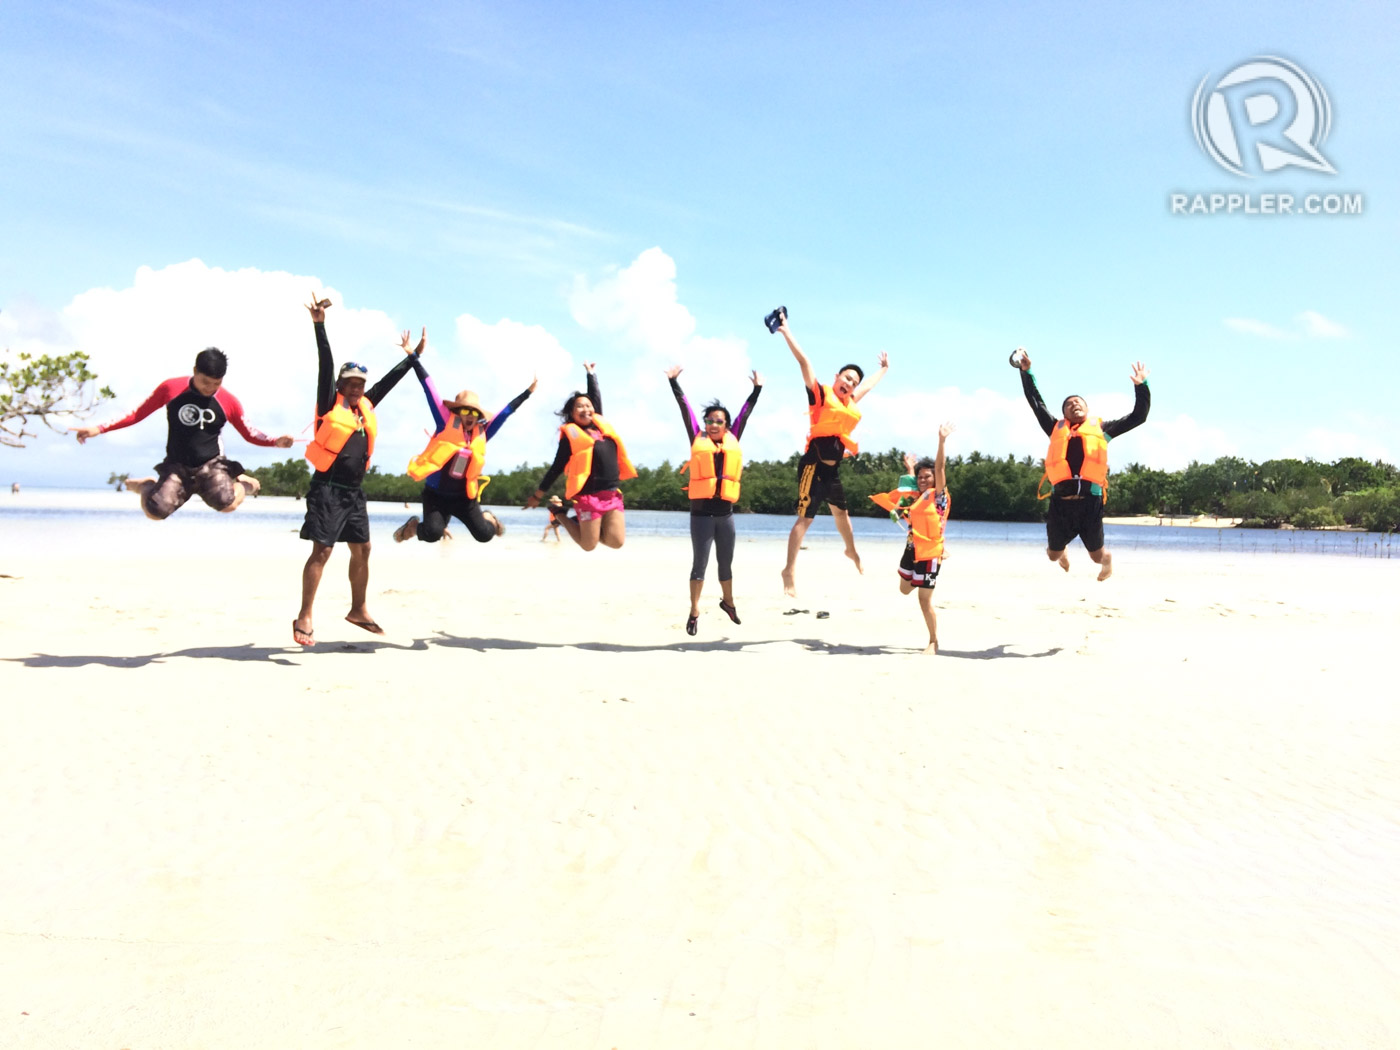 JUMPSHOT IN PARADISE. Schedule a trip to Cagbalete with your barkada and beat the heat this summer! Photo by Eloi Pramis